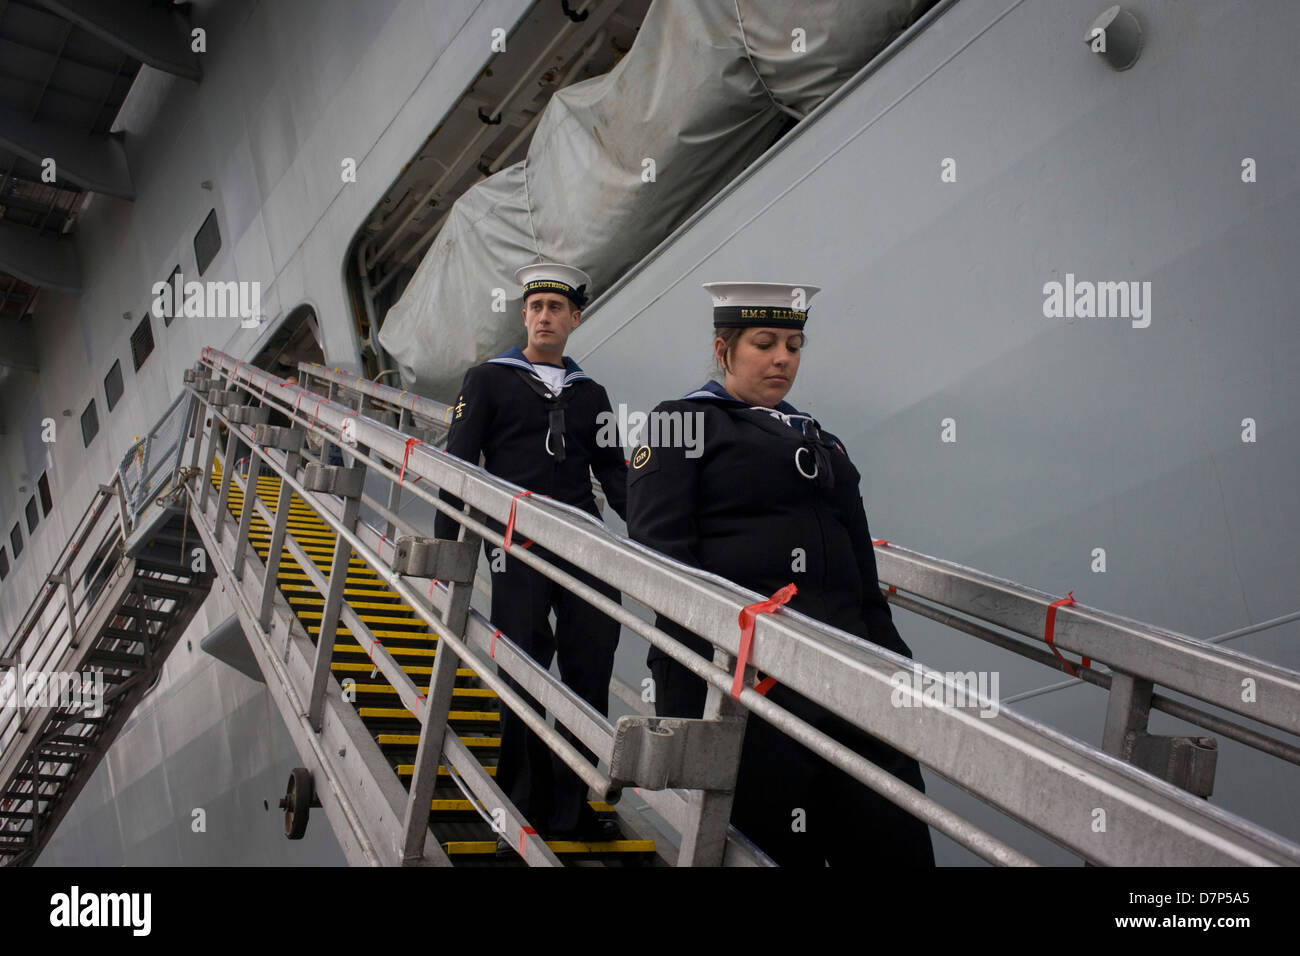 Sailors walk down the gangplank beneath the giant hull of their ship during a tour by the general public on-board - Stock Image